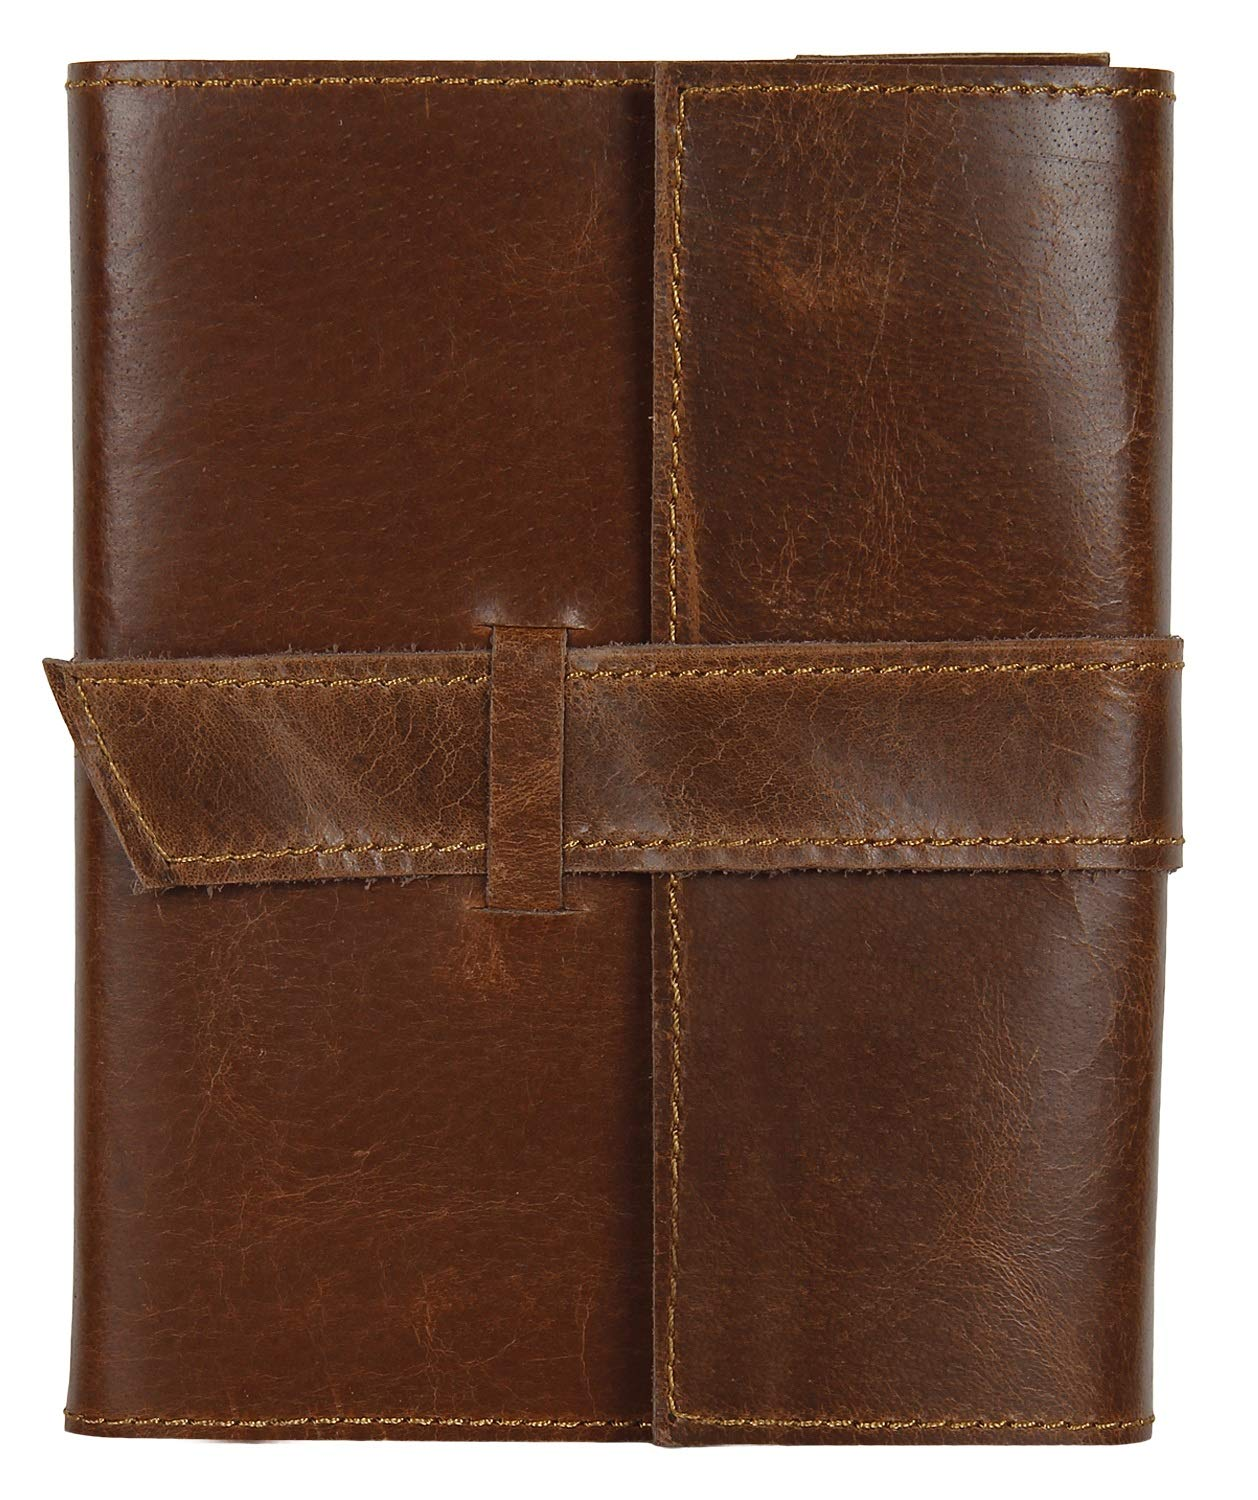 Handmade Leather Journal Notebook Refillable Diary gifts for Men Women Gift for Him Her Artist Poet RusticTown LJ00051MH